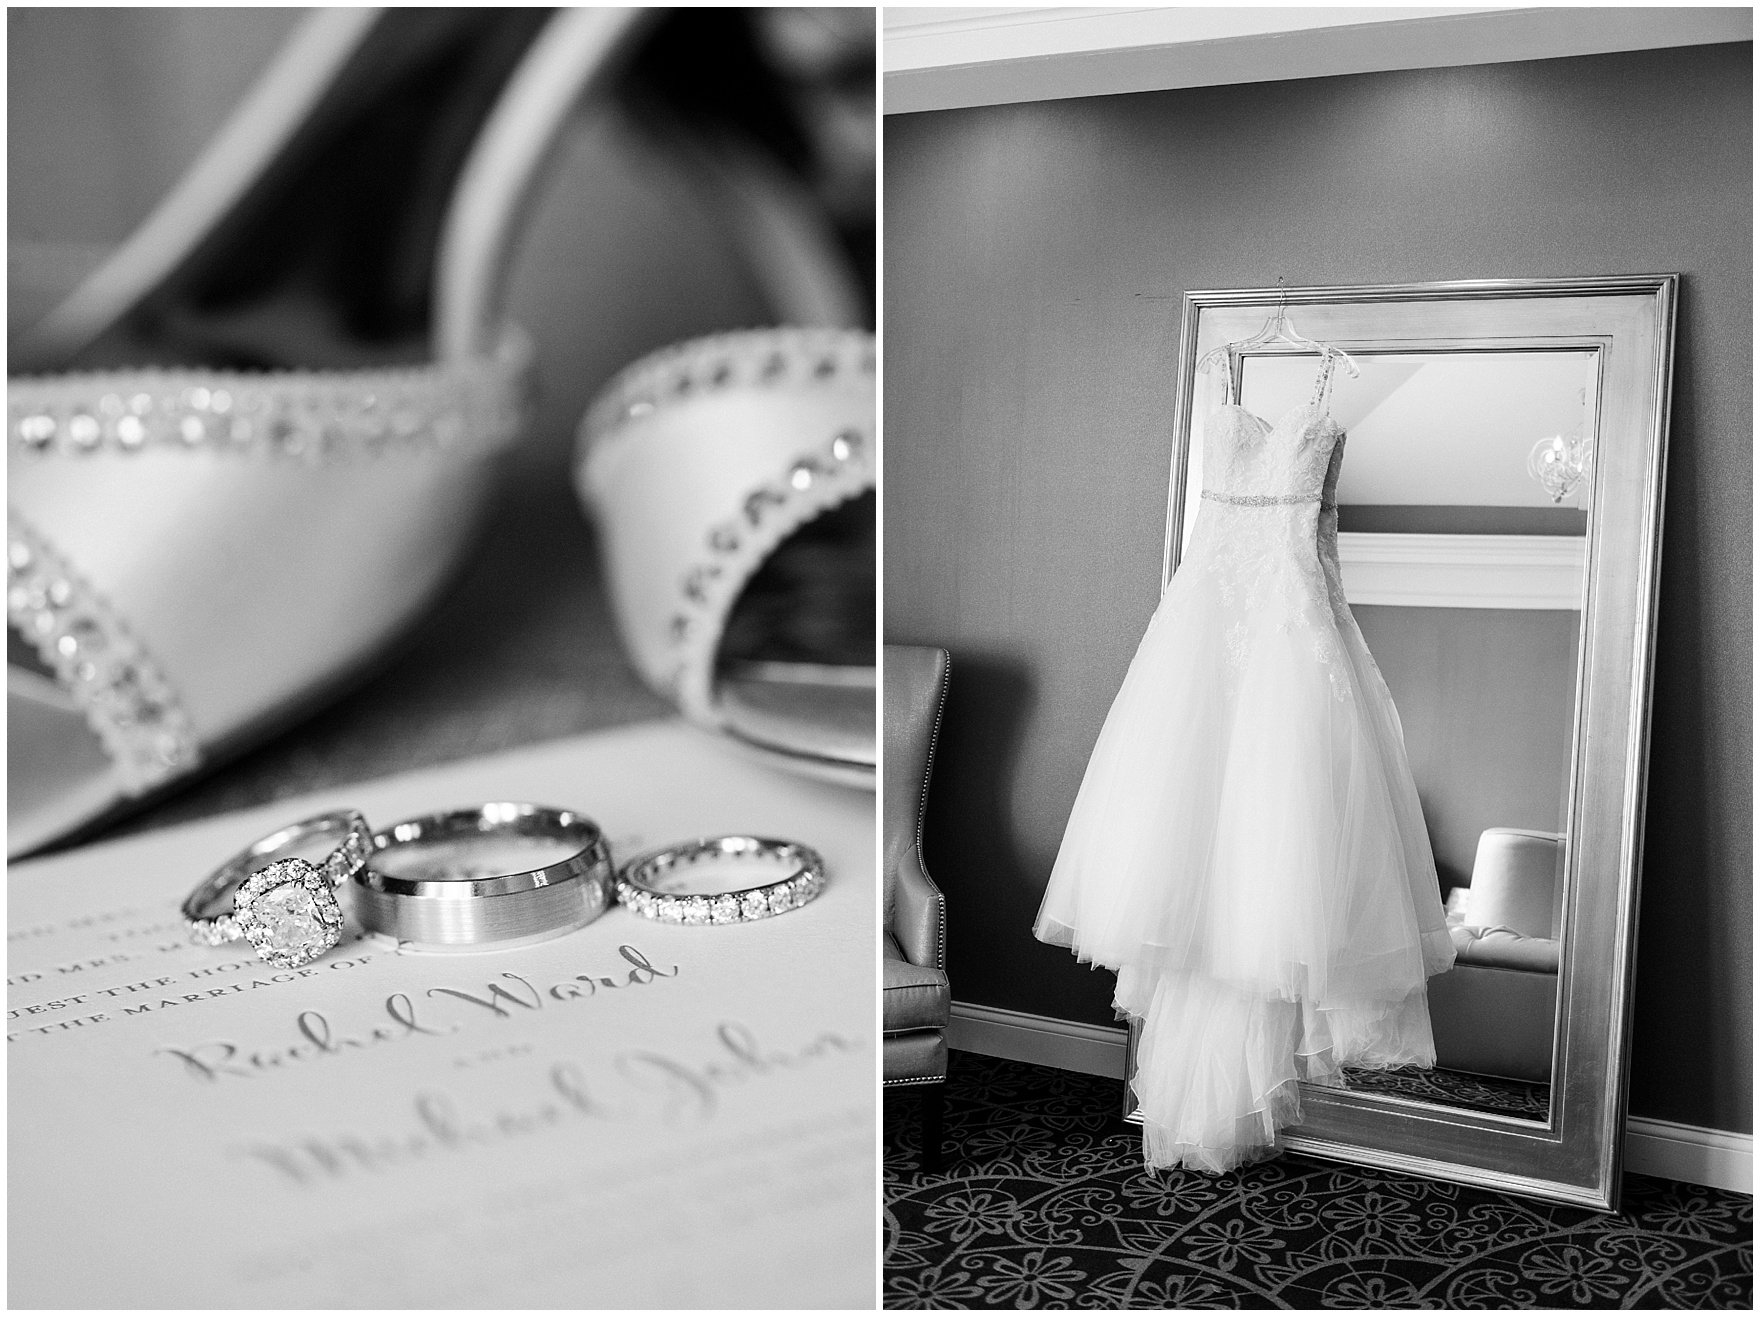 Details of the bride's dress, shoes, invitations, and rings for an Itasca Country Club Illinois wedding.